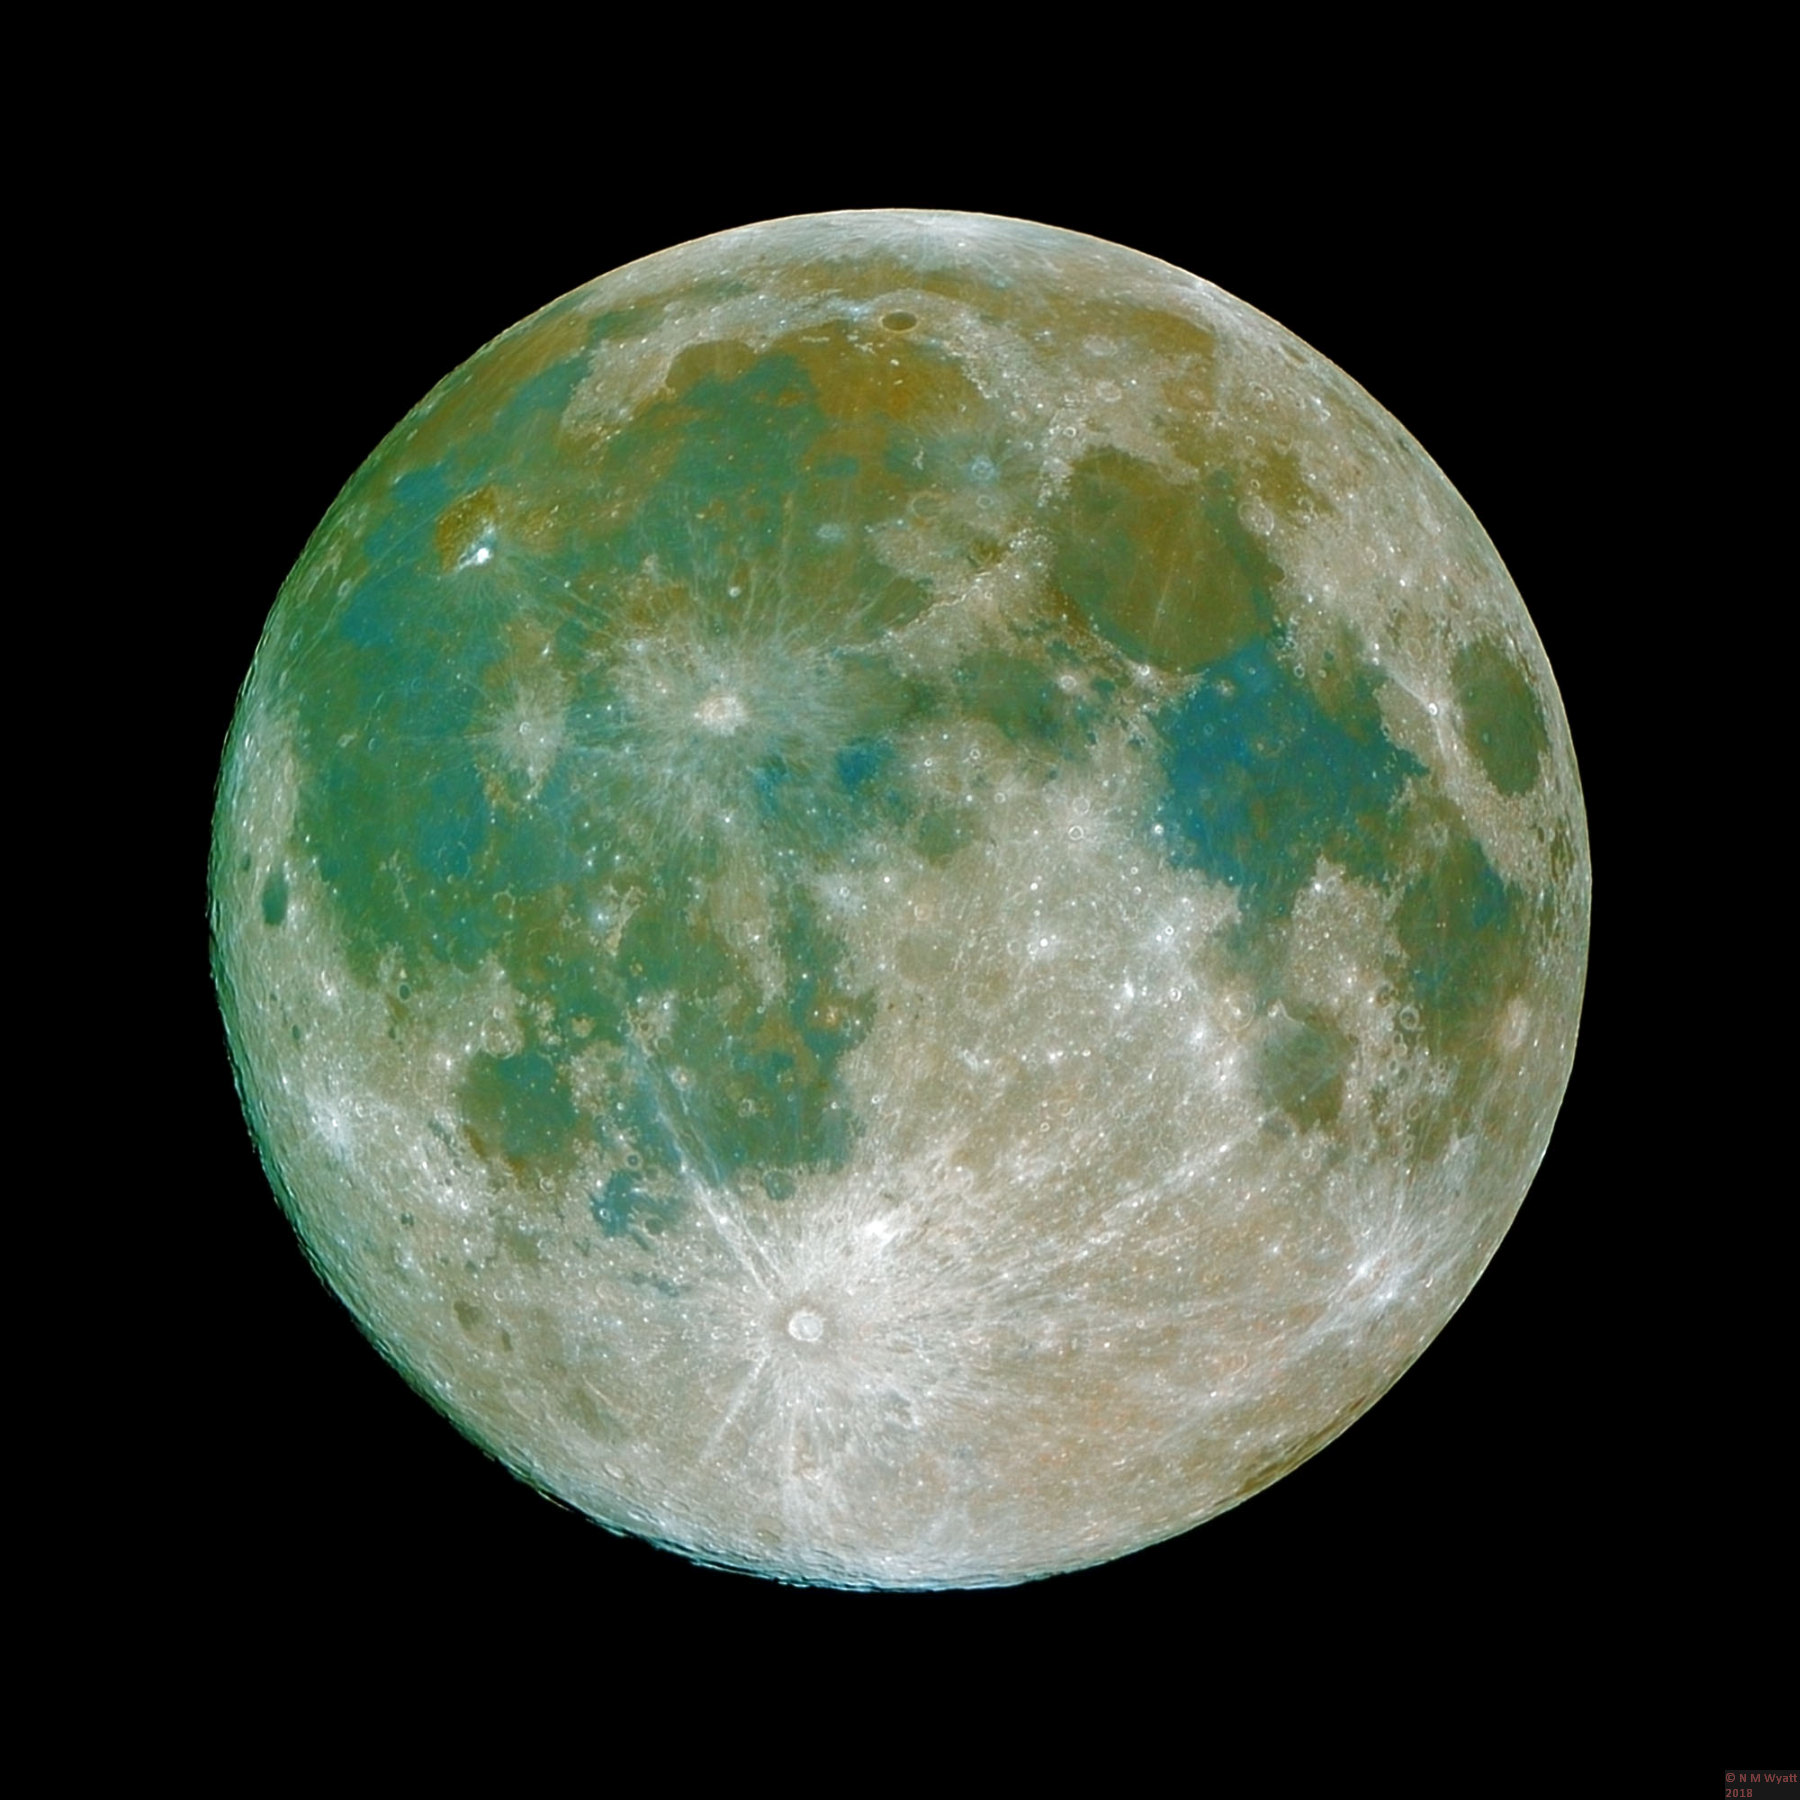 The moon in enhanced colour